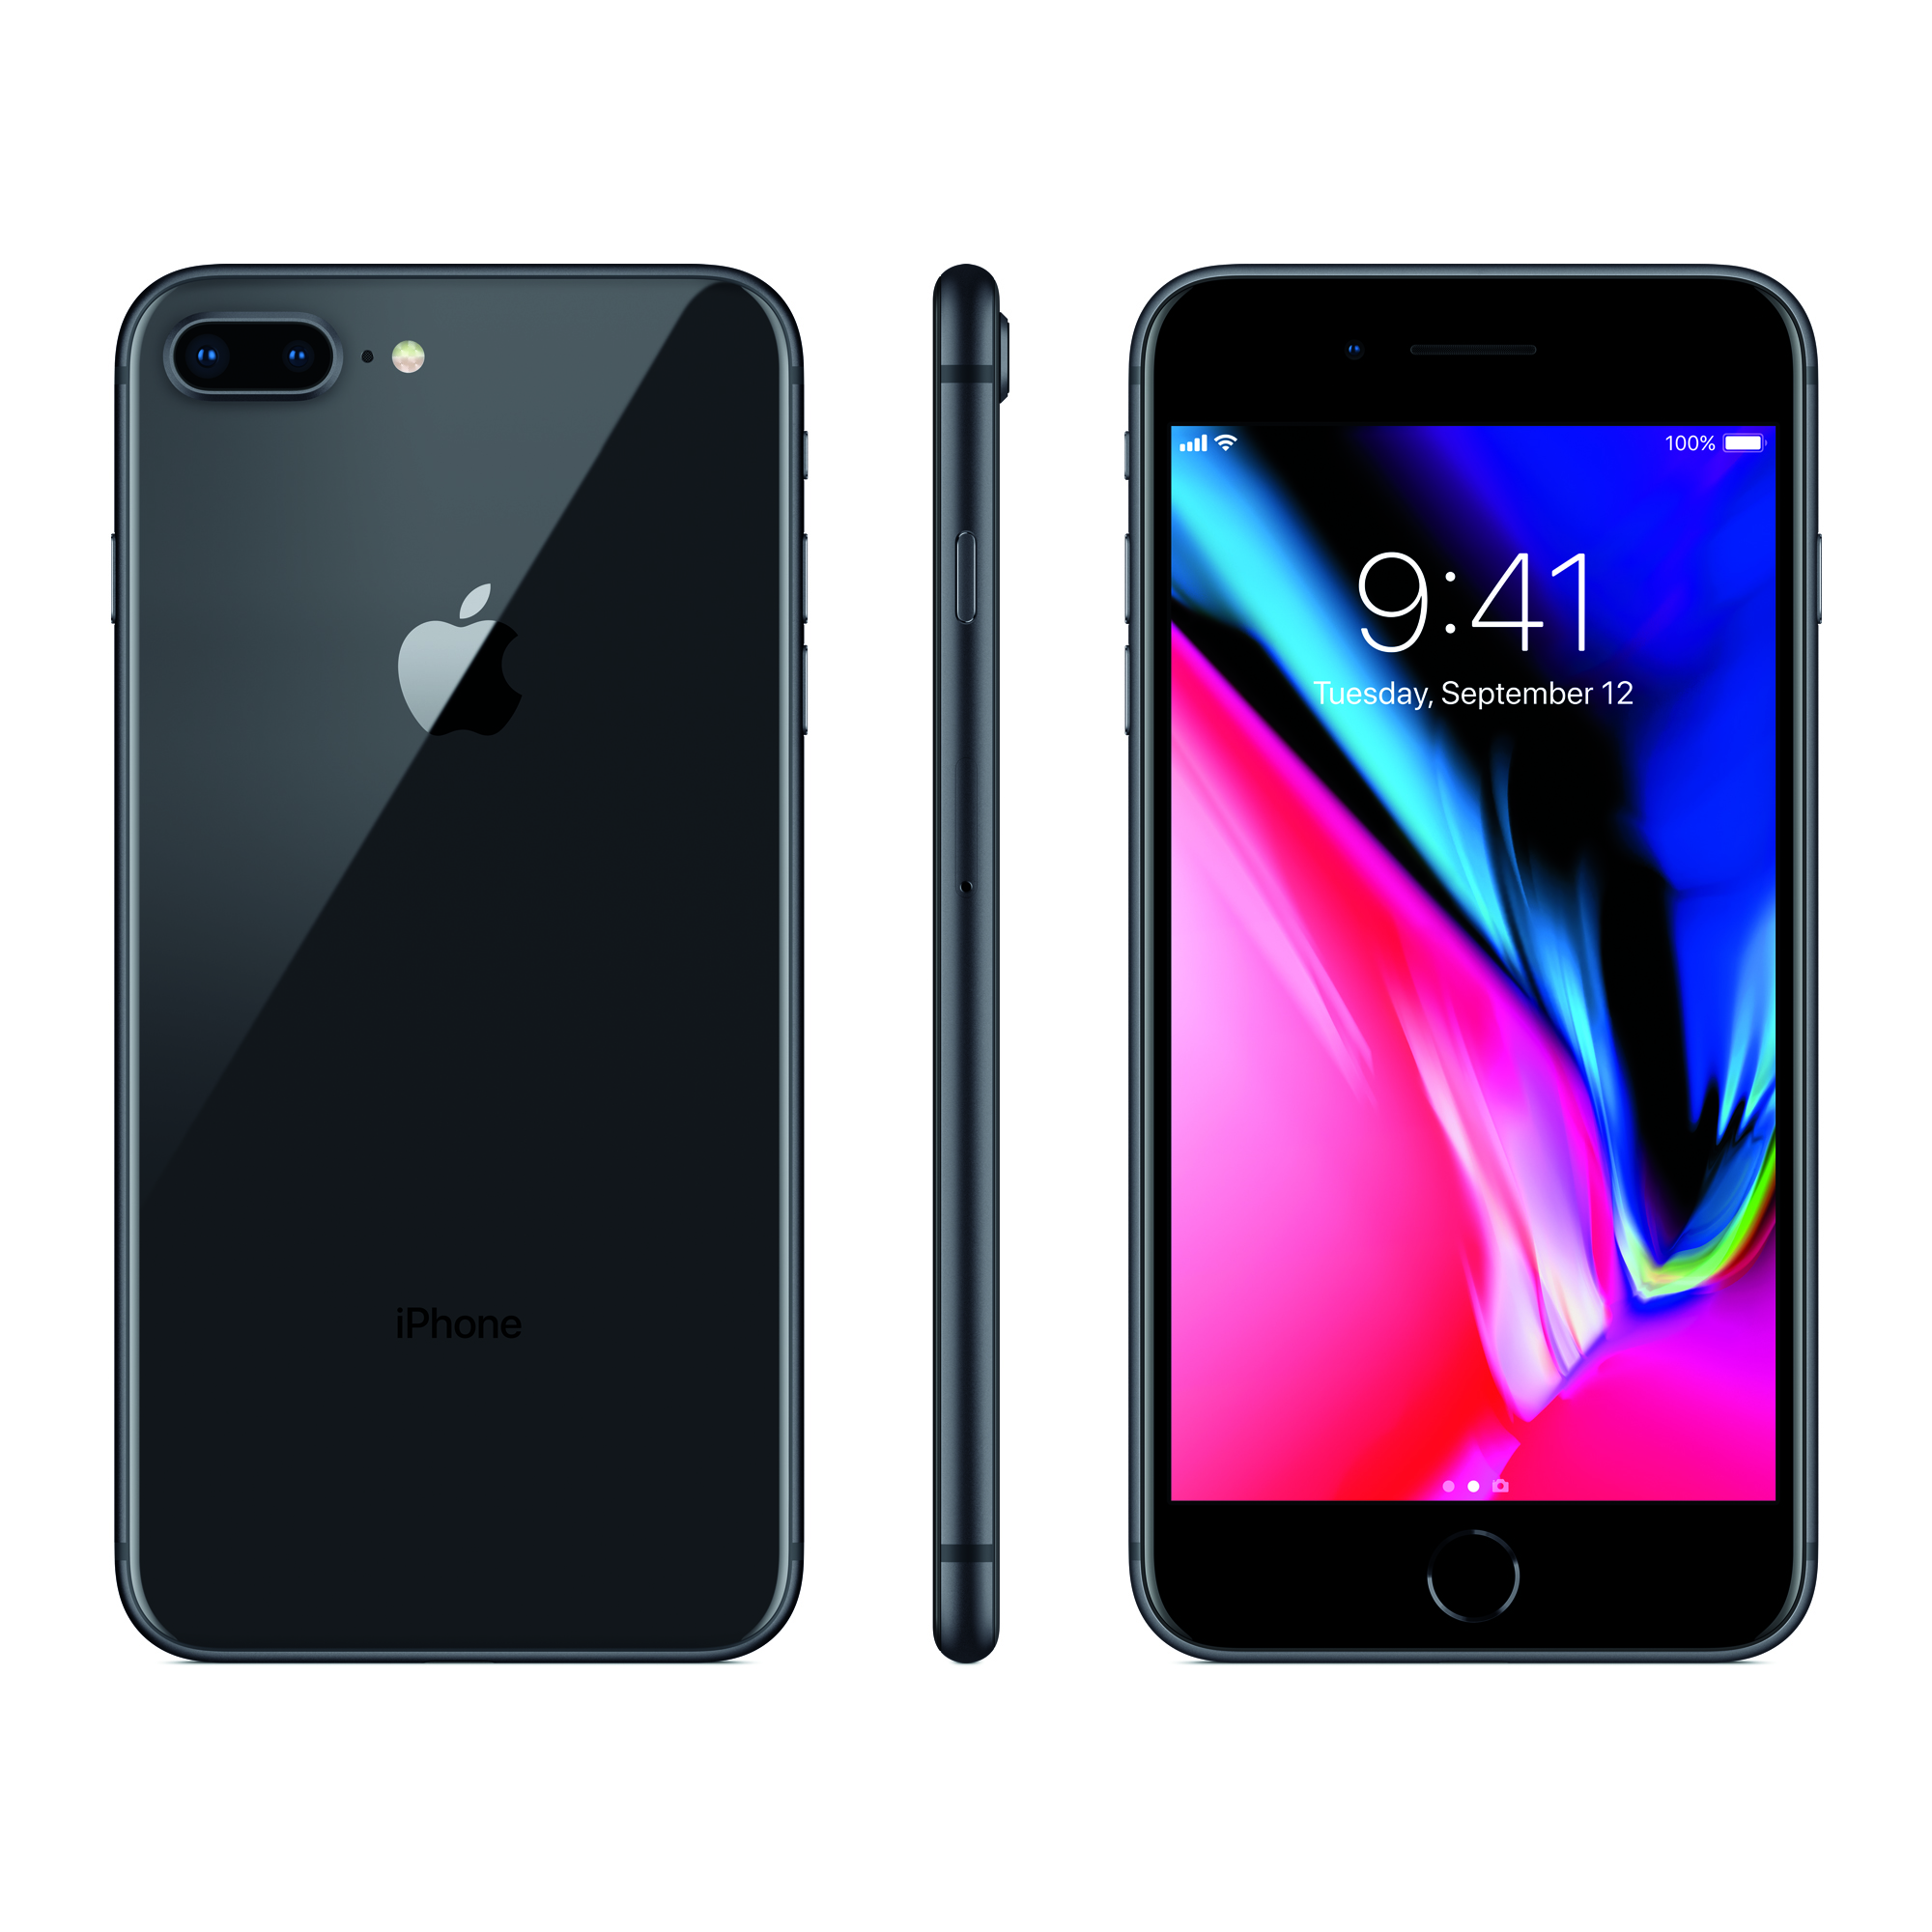 Total Wireless Prepaid Apple iPhone 8 Plus 64GB, Space Gray